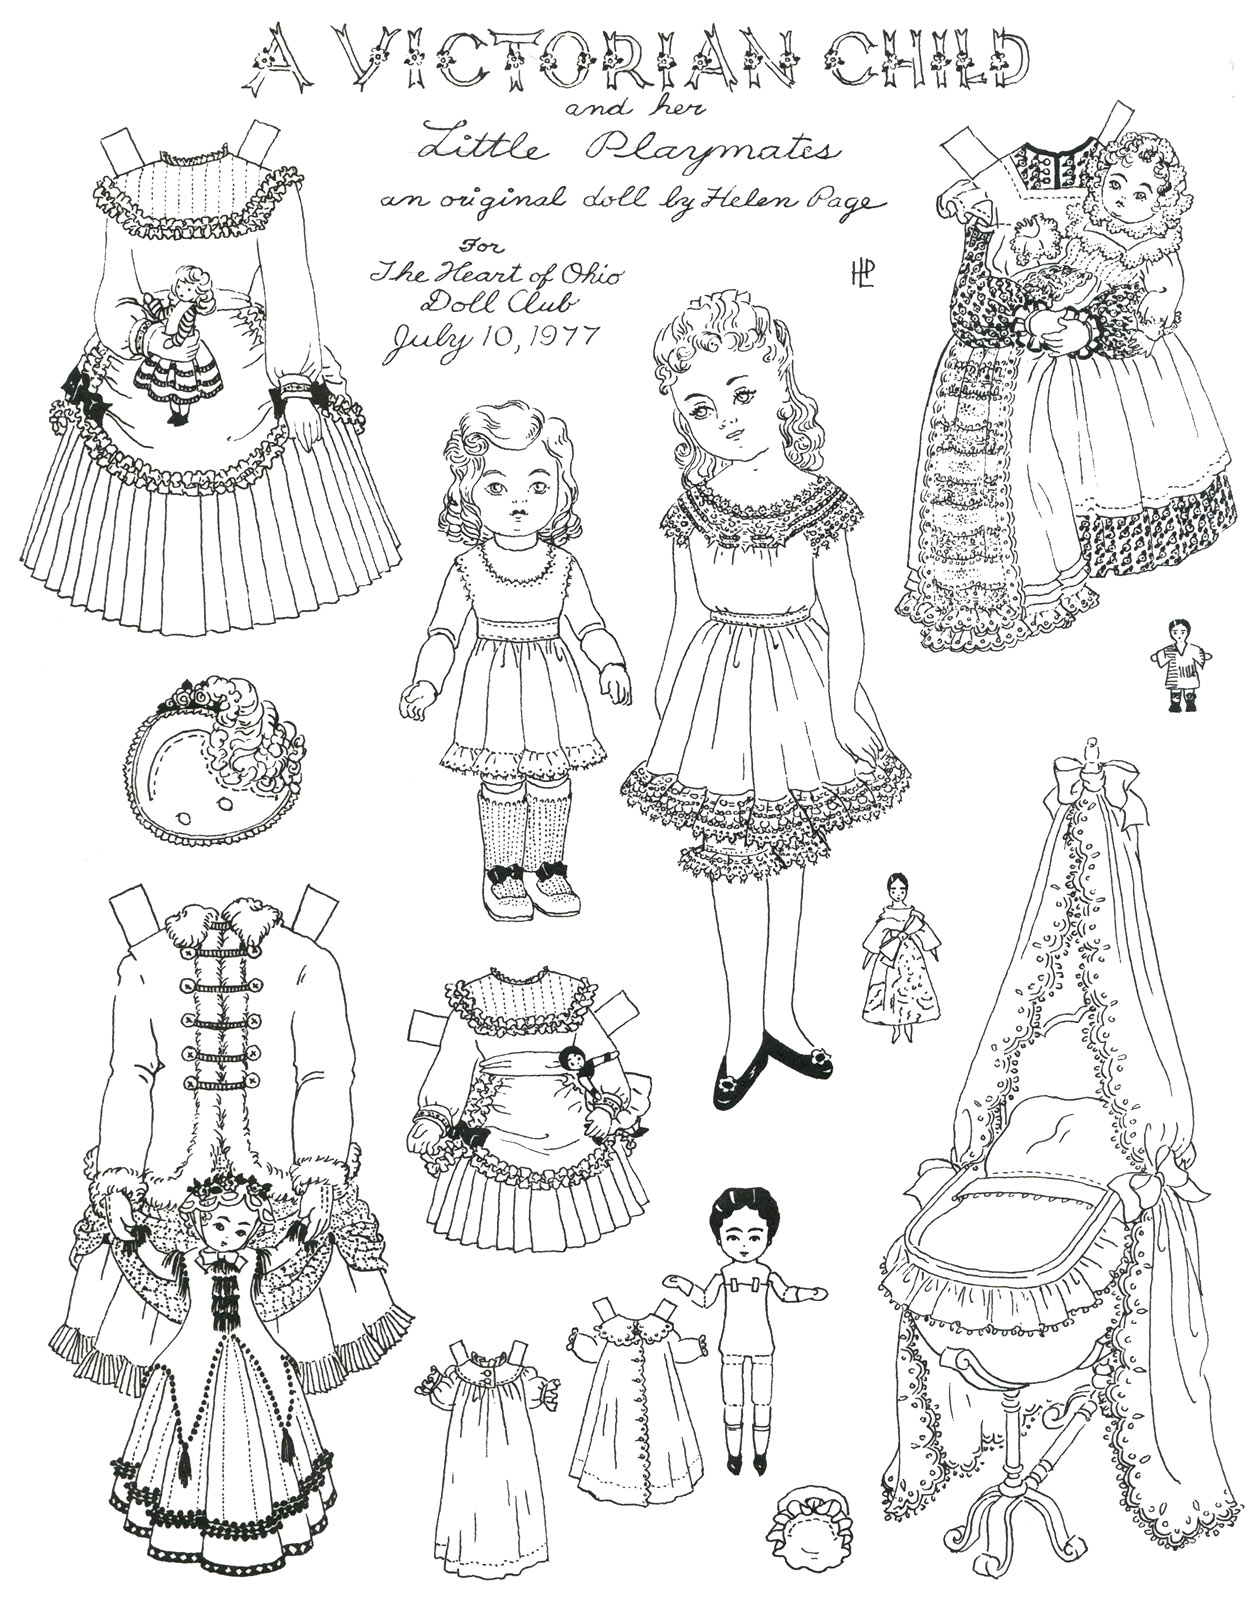 Megsy V Illustration: Victorian Clothes